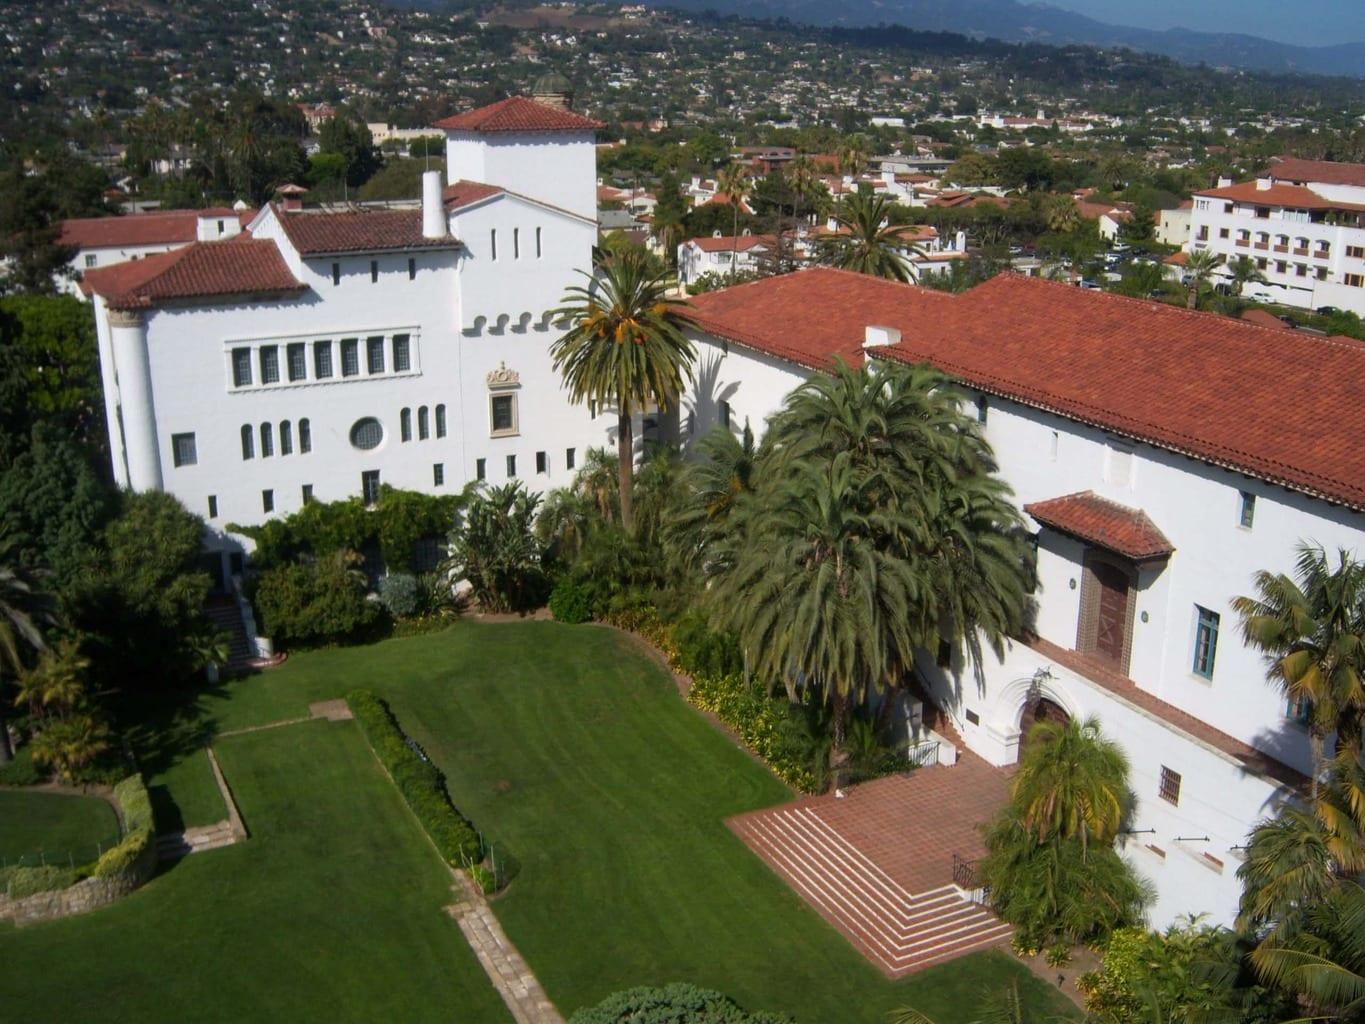 Explore Santa Barbara County Courthouse